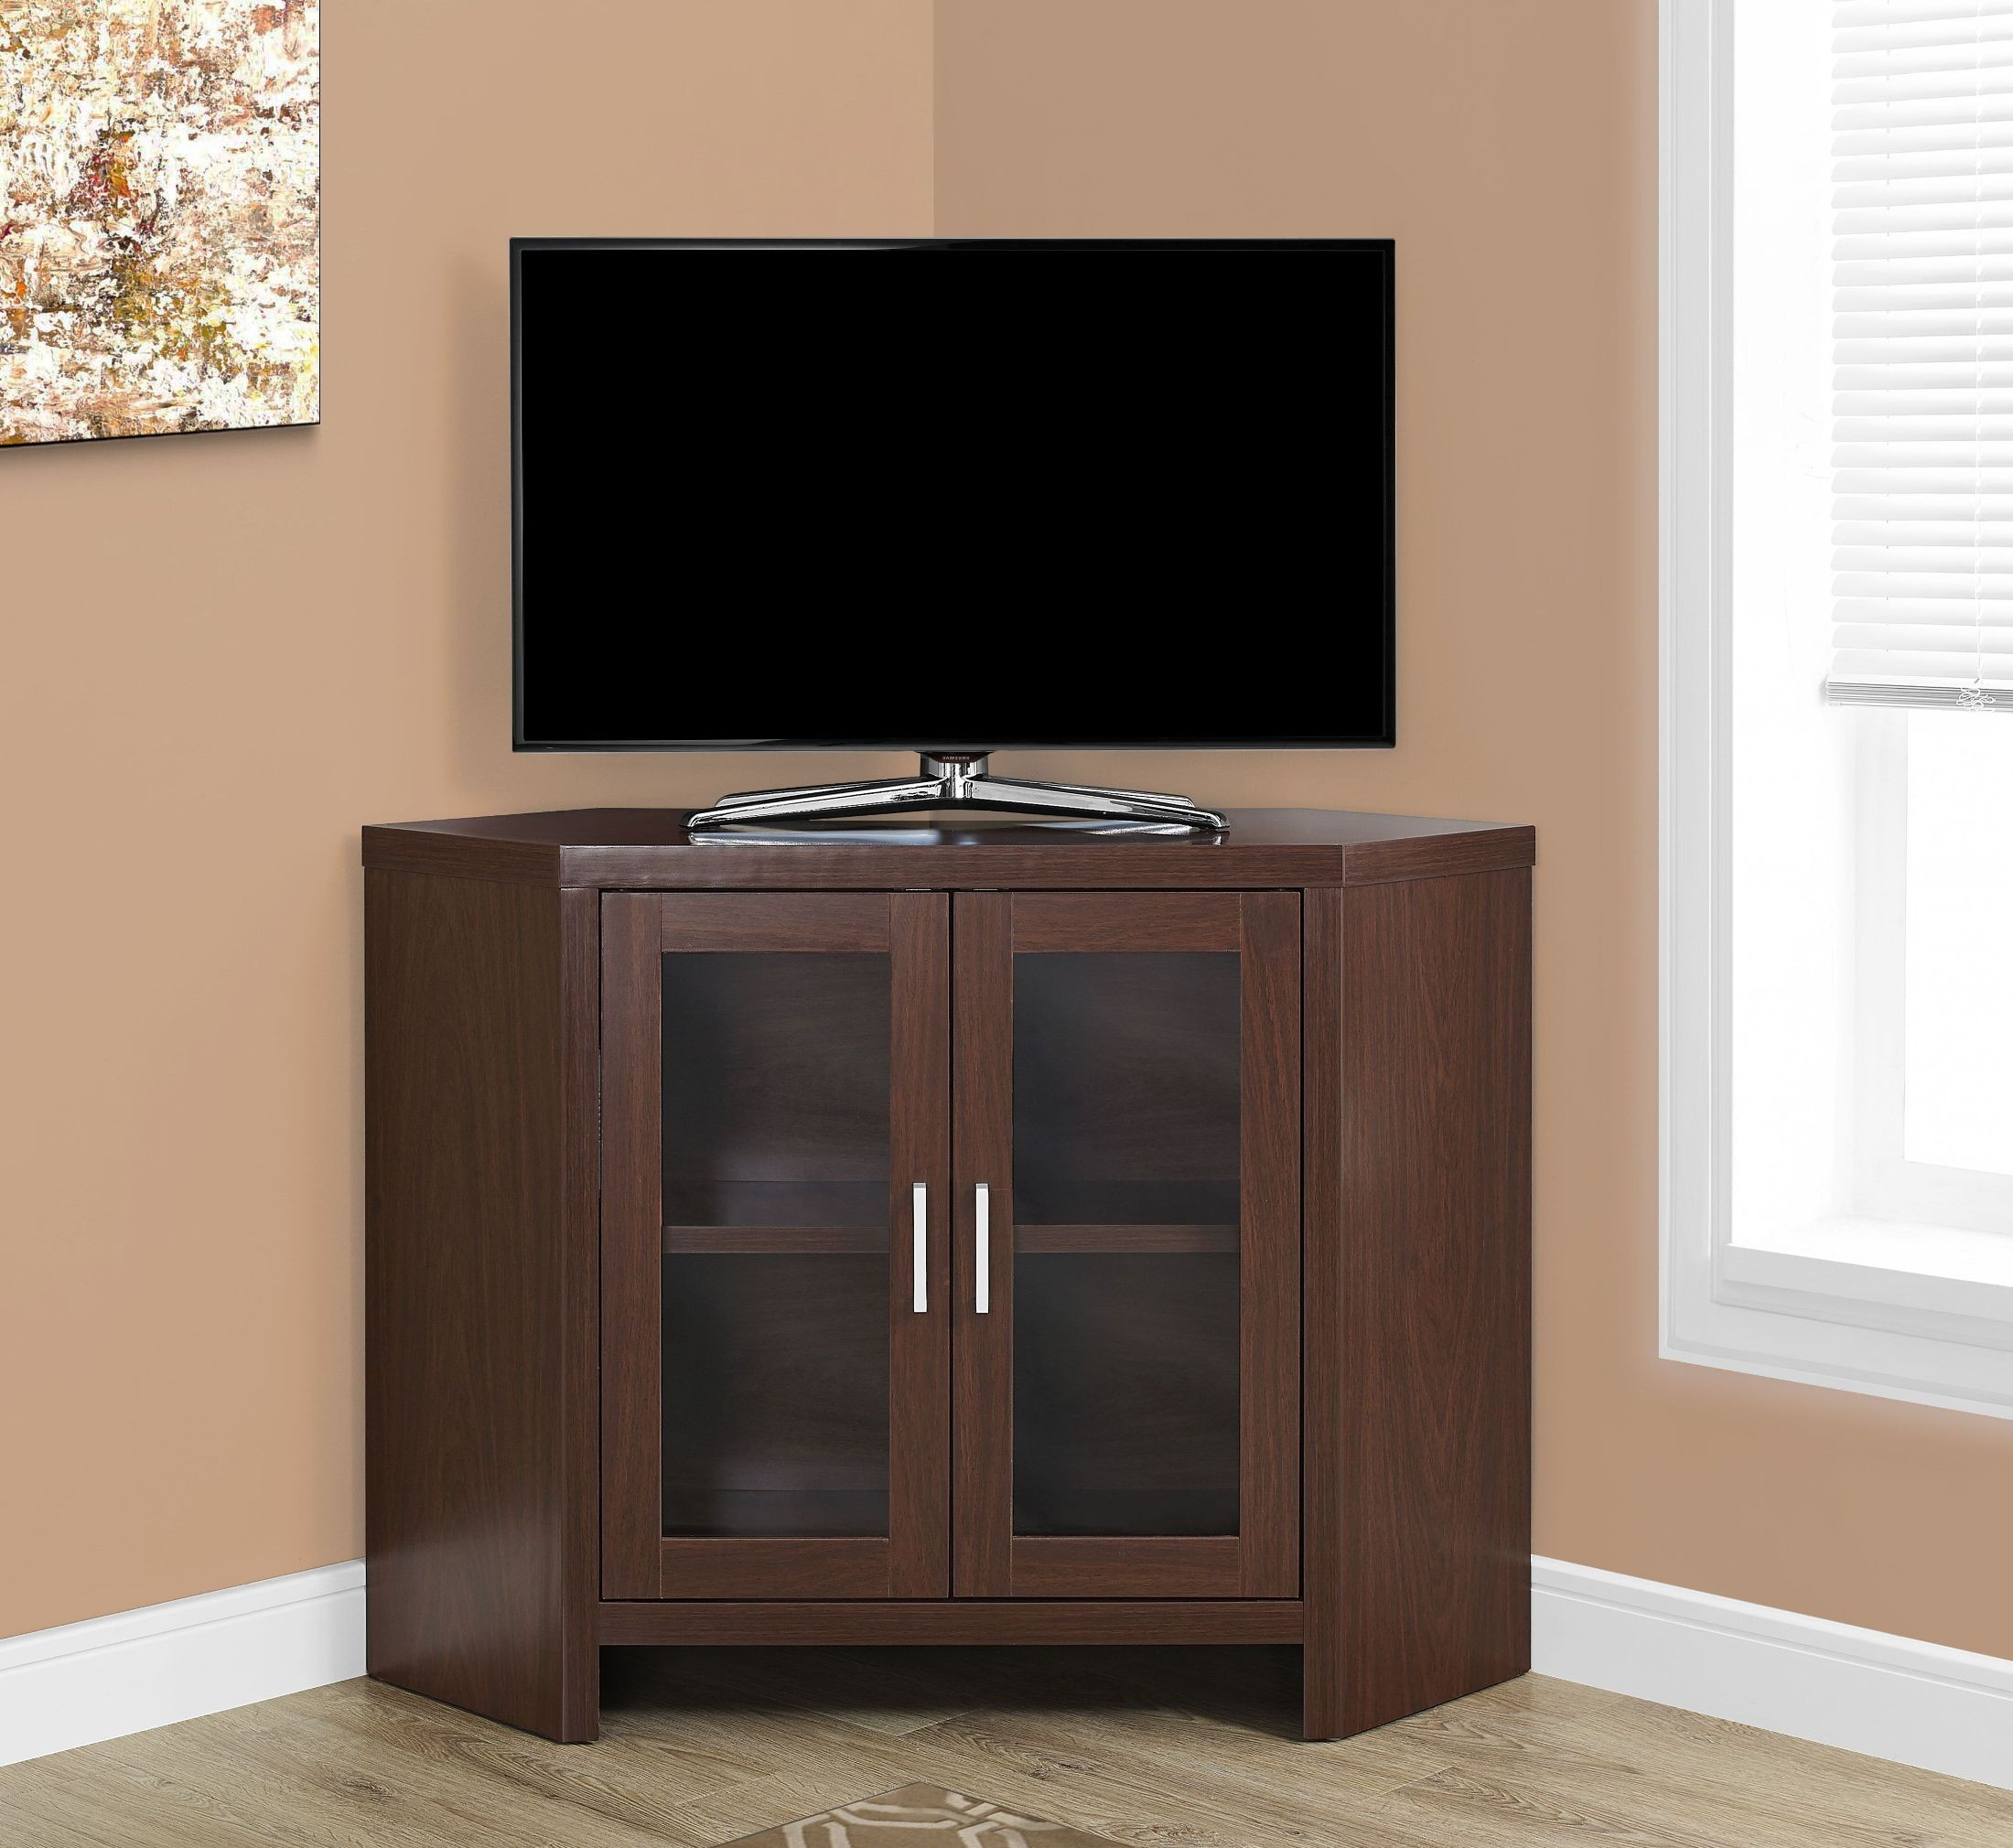 42 Quot Warm Cherry Corner Tv Stand From Monarch Coleman